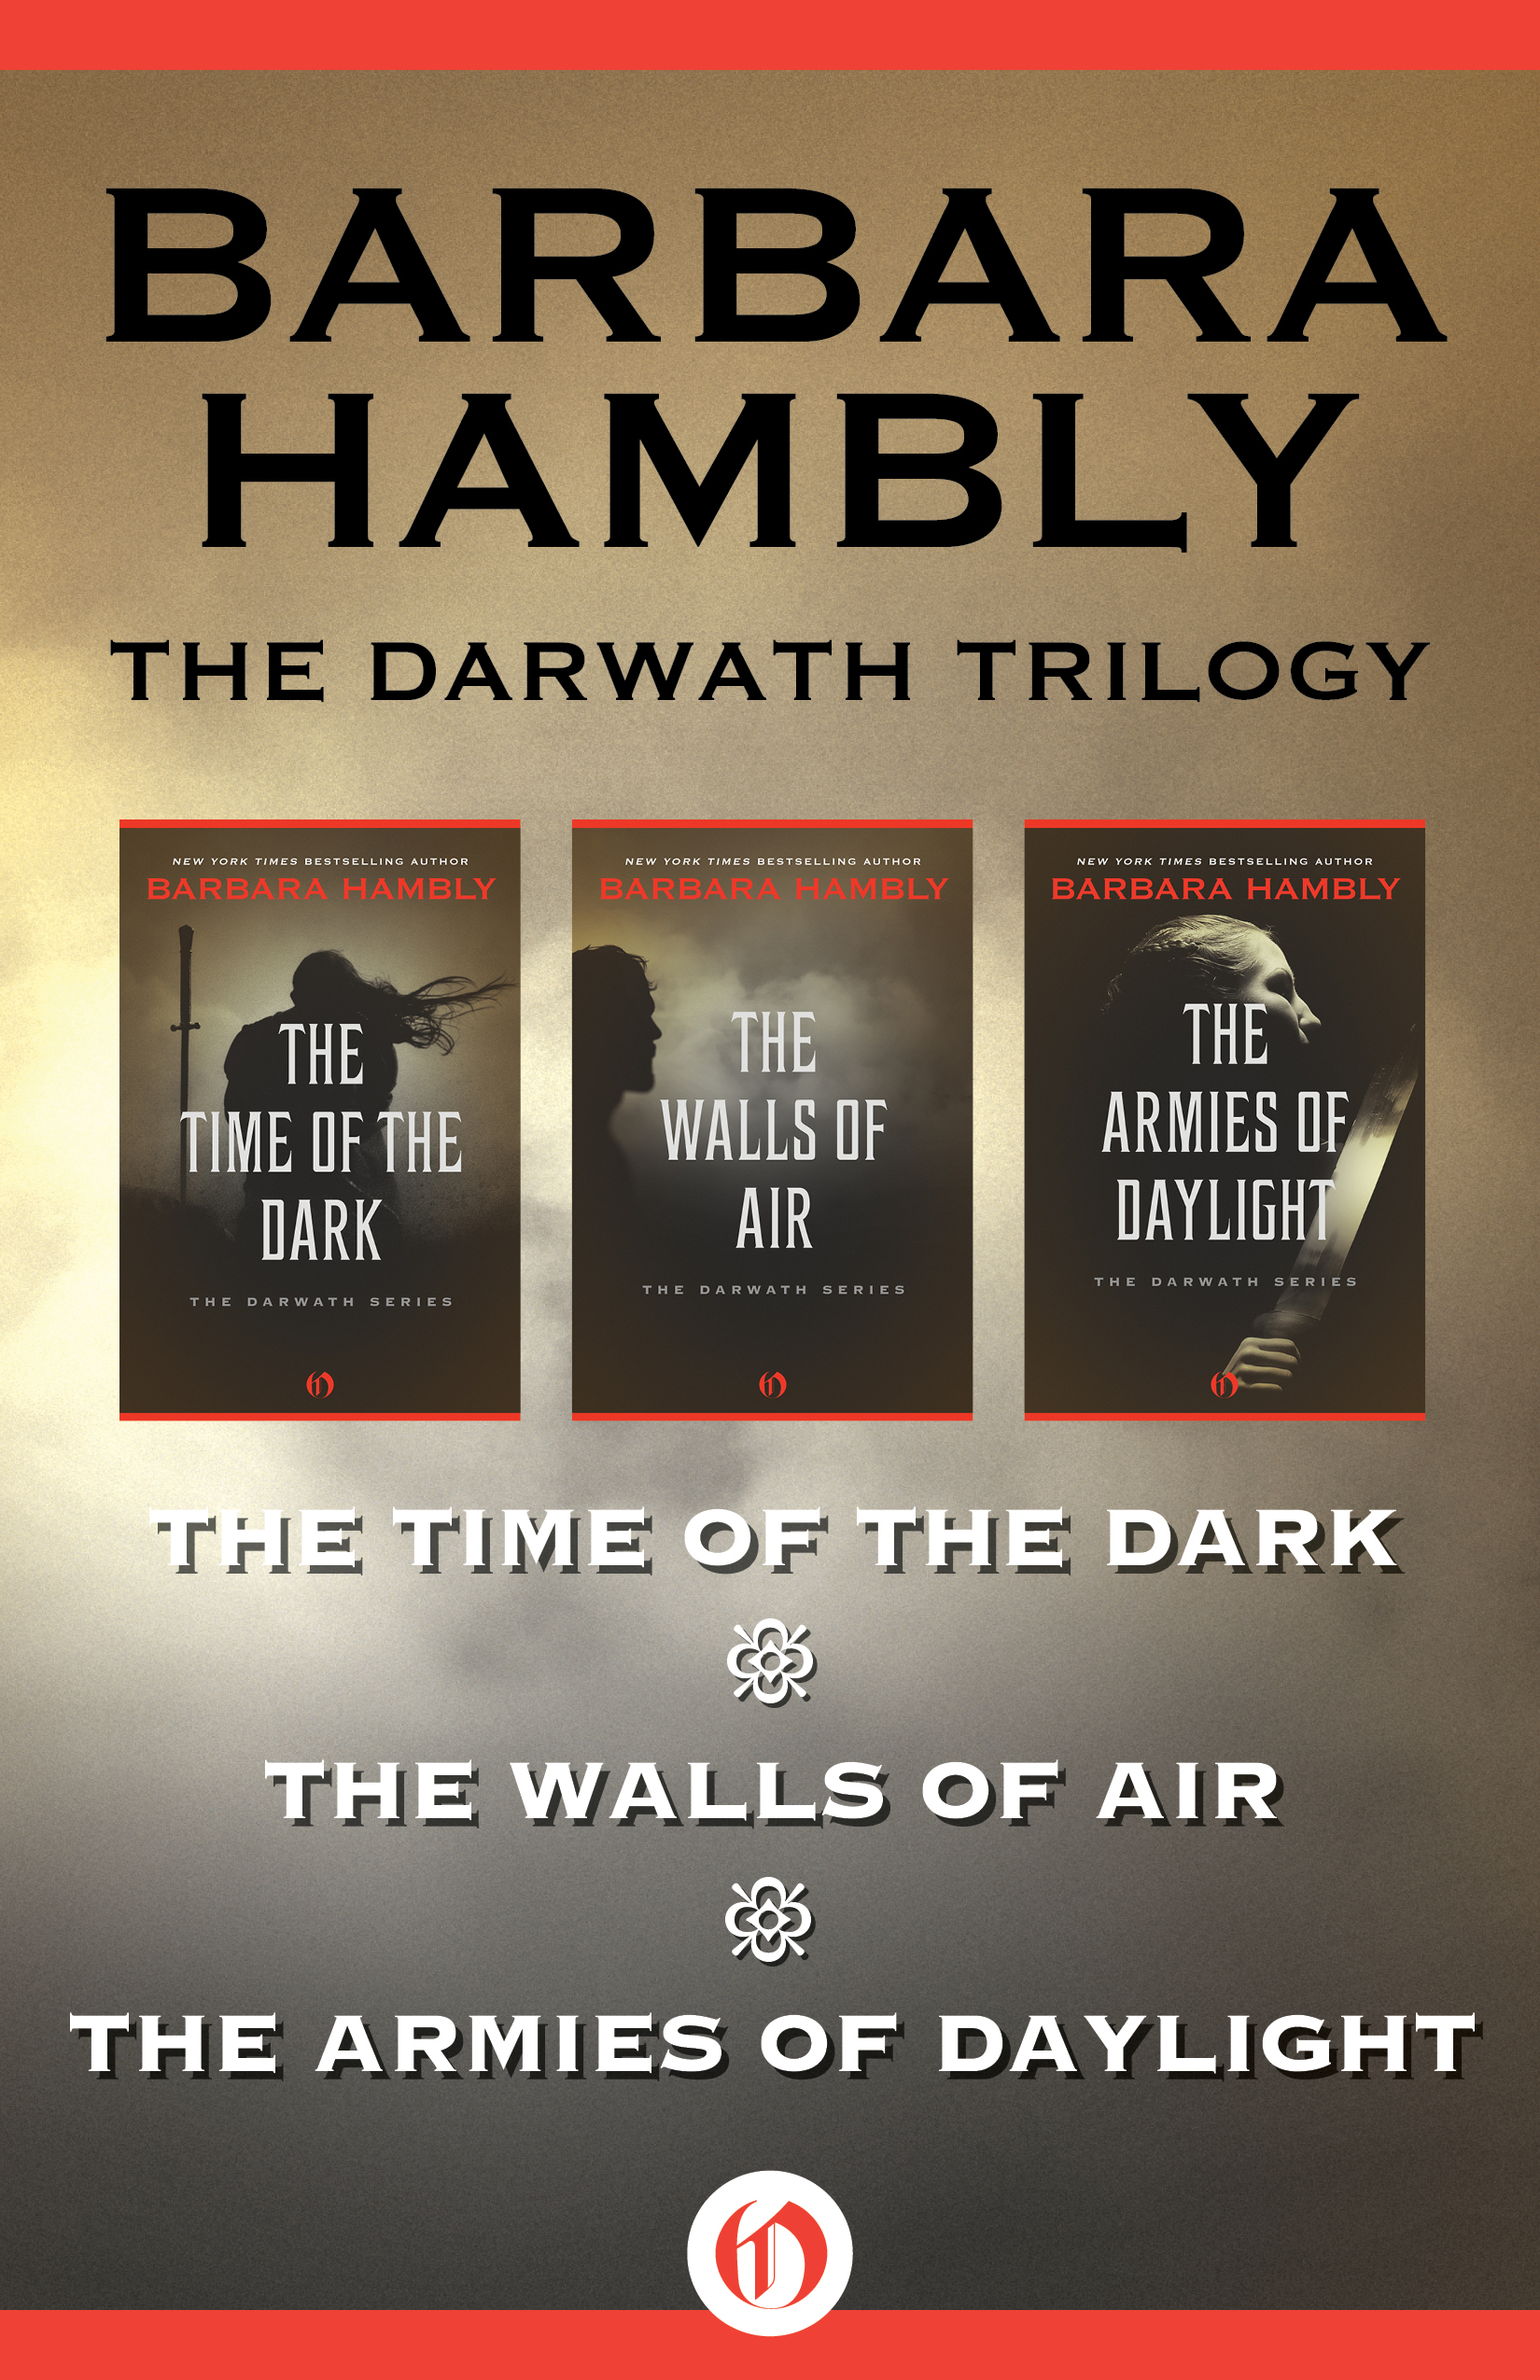 The Darwath Series By: Barbara Hambly